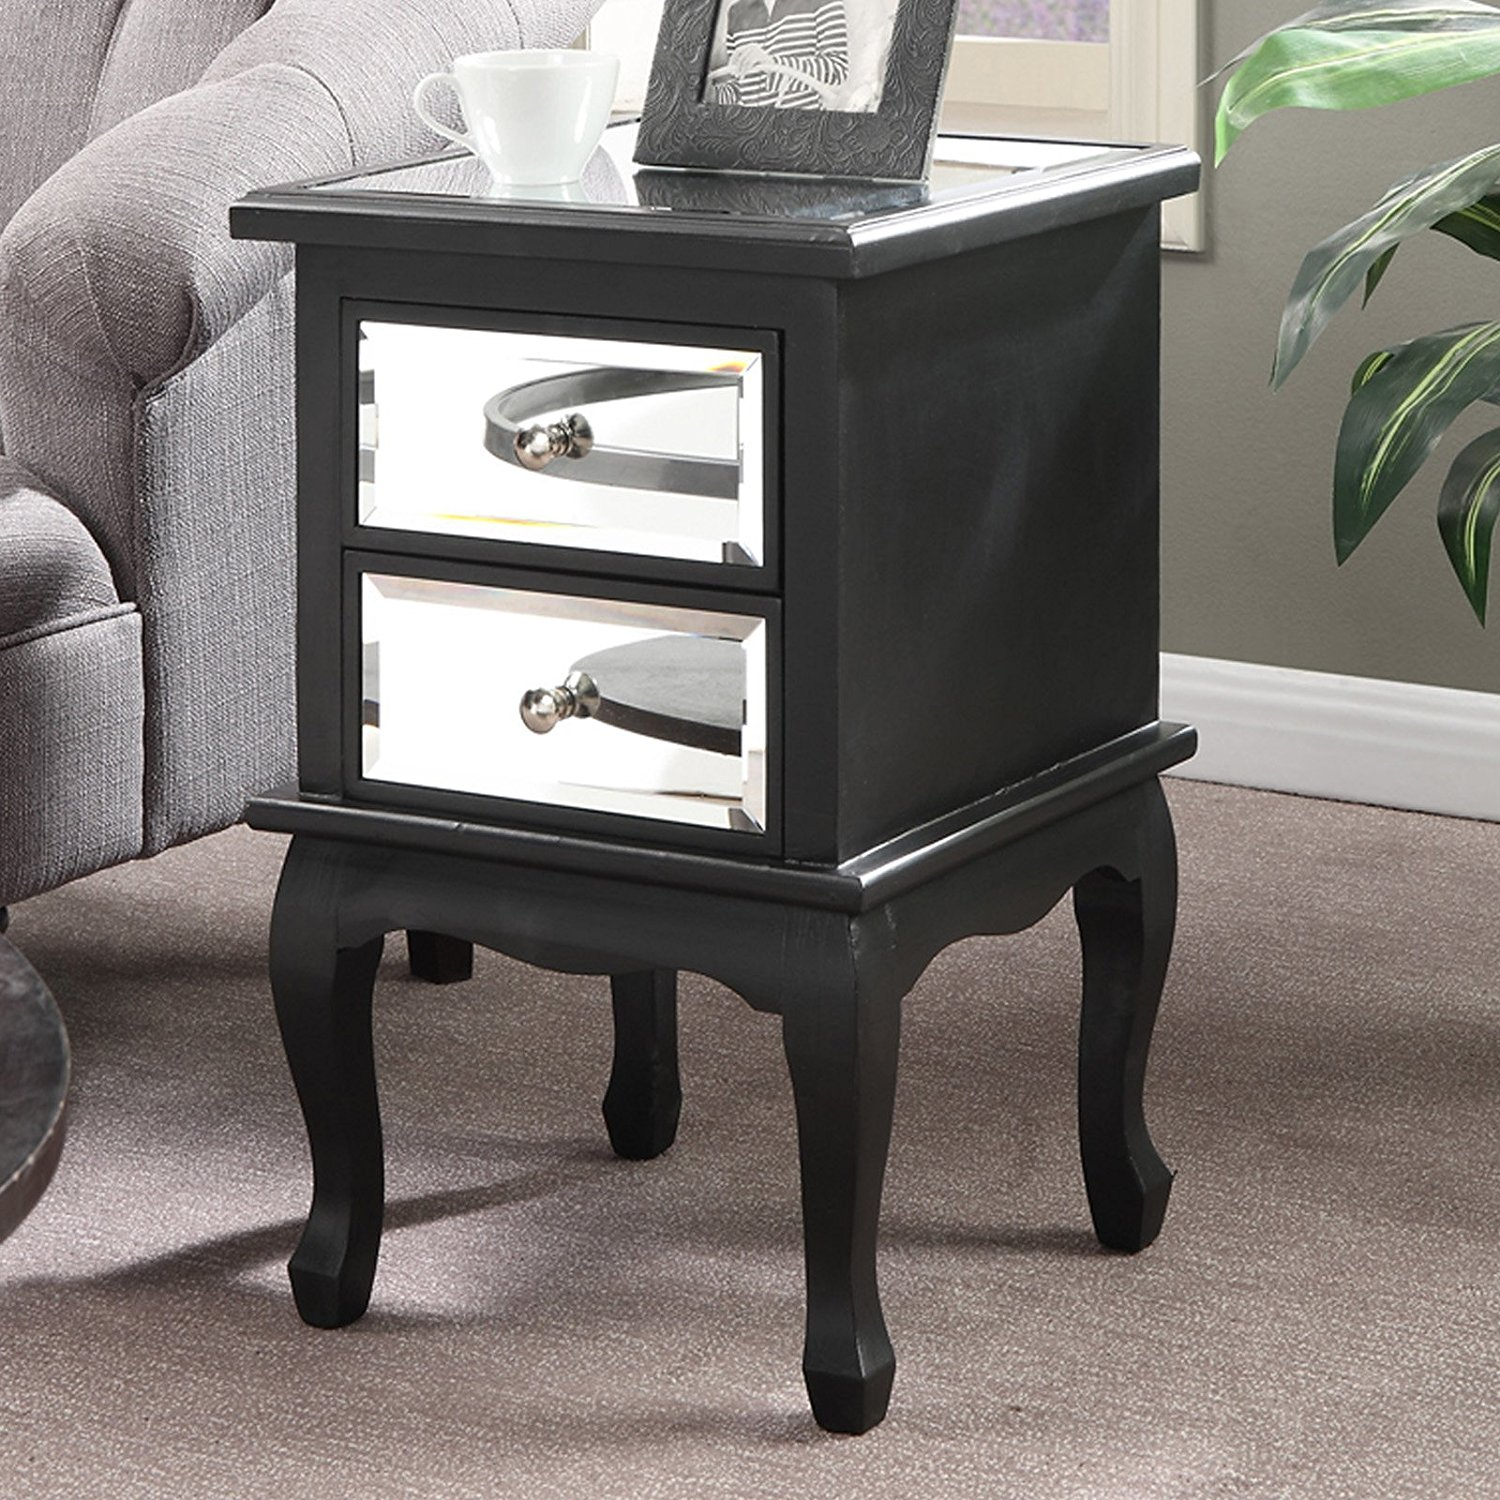 Buy Classy Bedroom And Guest Room Mirrored End Table